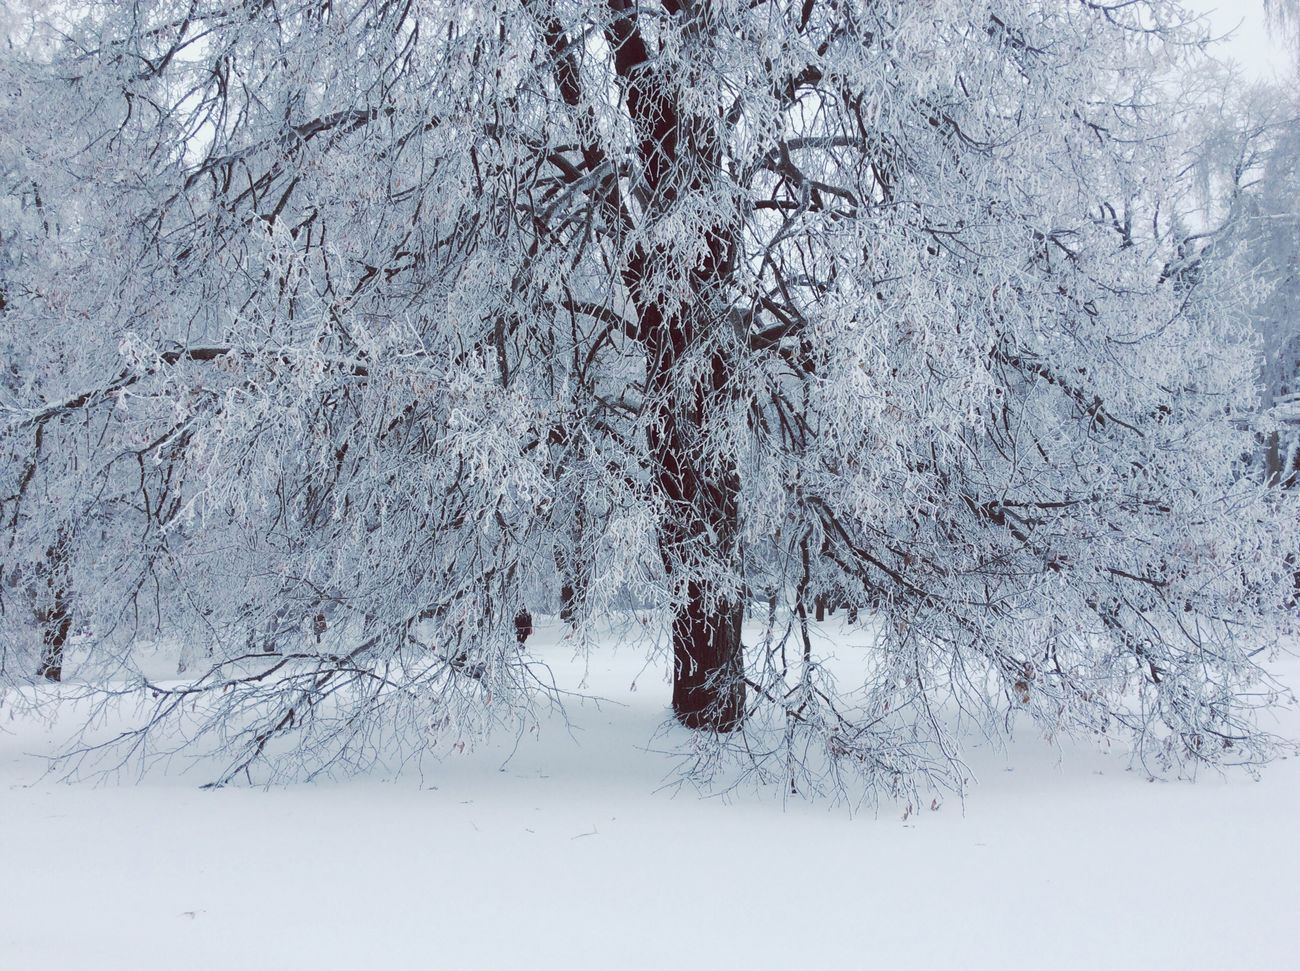 Winter Magic Moments Wintertime Snow Trees Winter Trees Winter Wonderland No People Snow Snowing Beauty In Nature Frozen Tranquil Scene Beauty In Nature Winter_collection Winterscapes